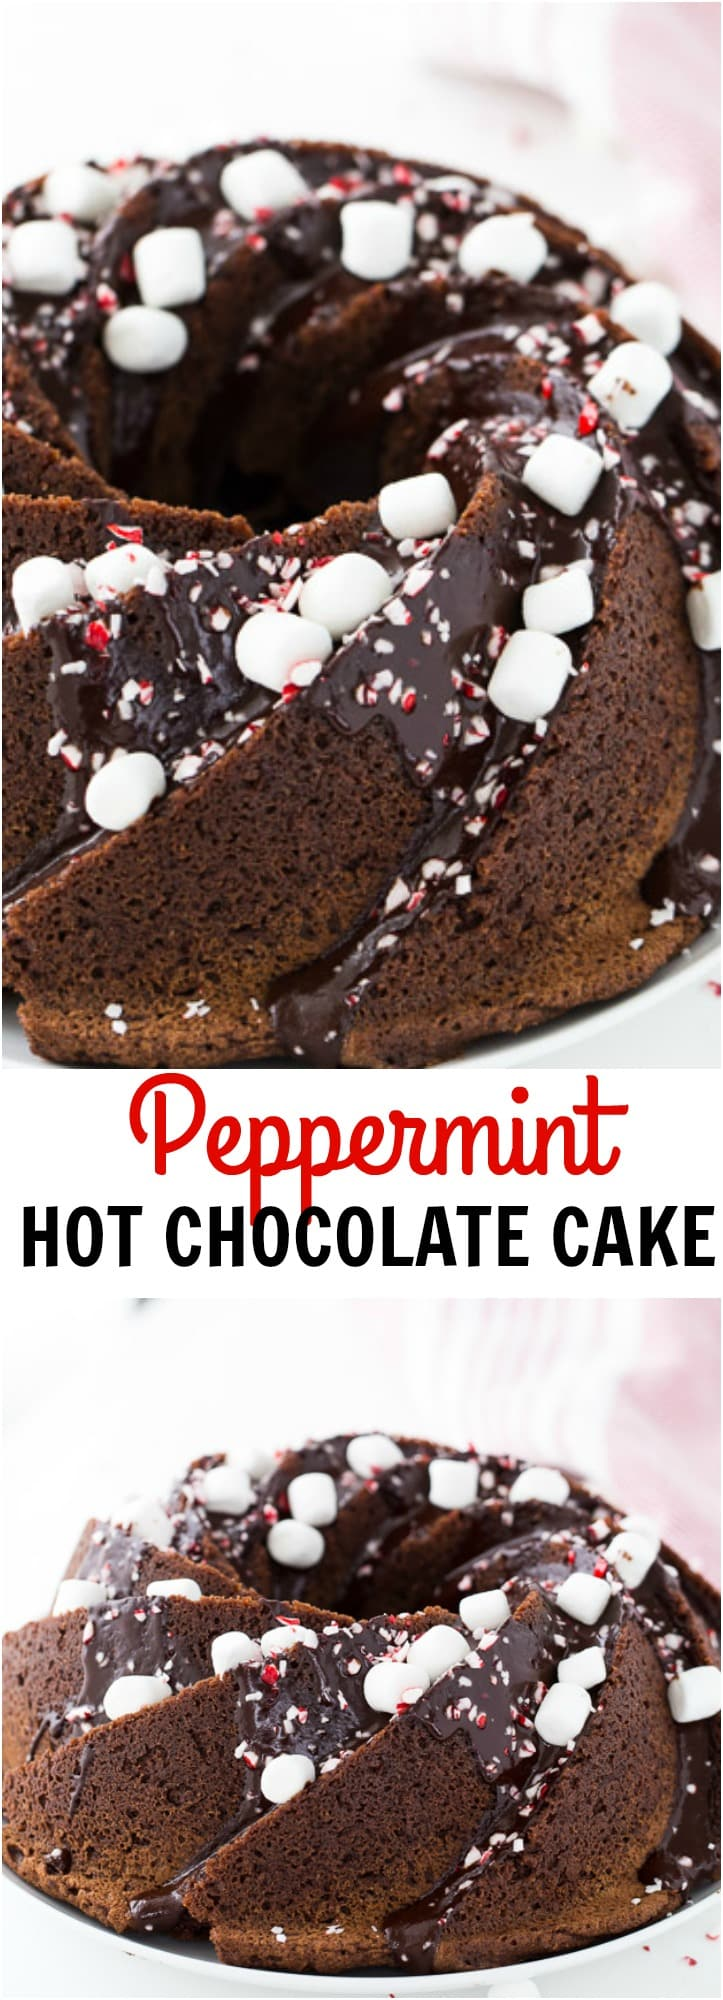 A decadent peppermint hot chocolate bundt cake this is winter perfect and a holiday season delight.